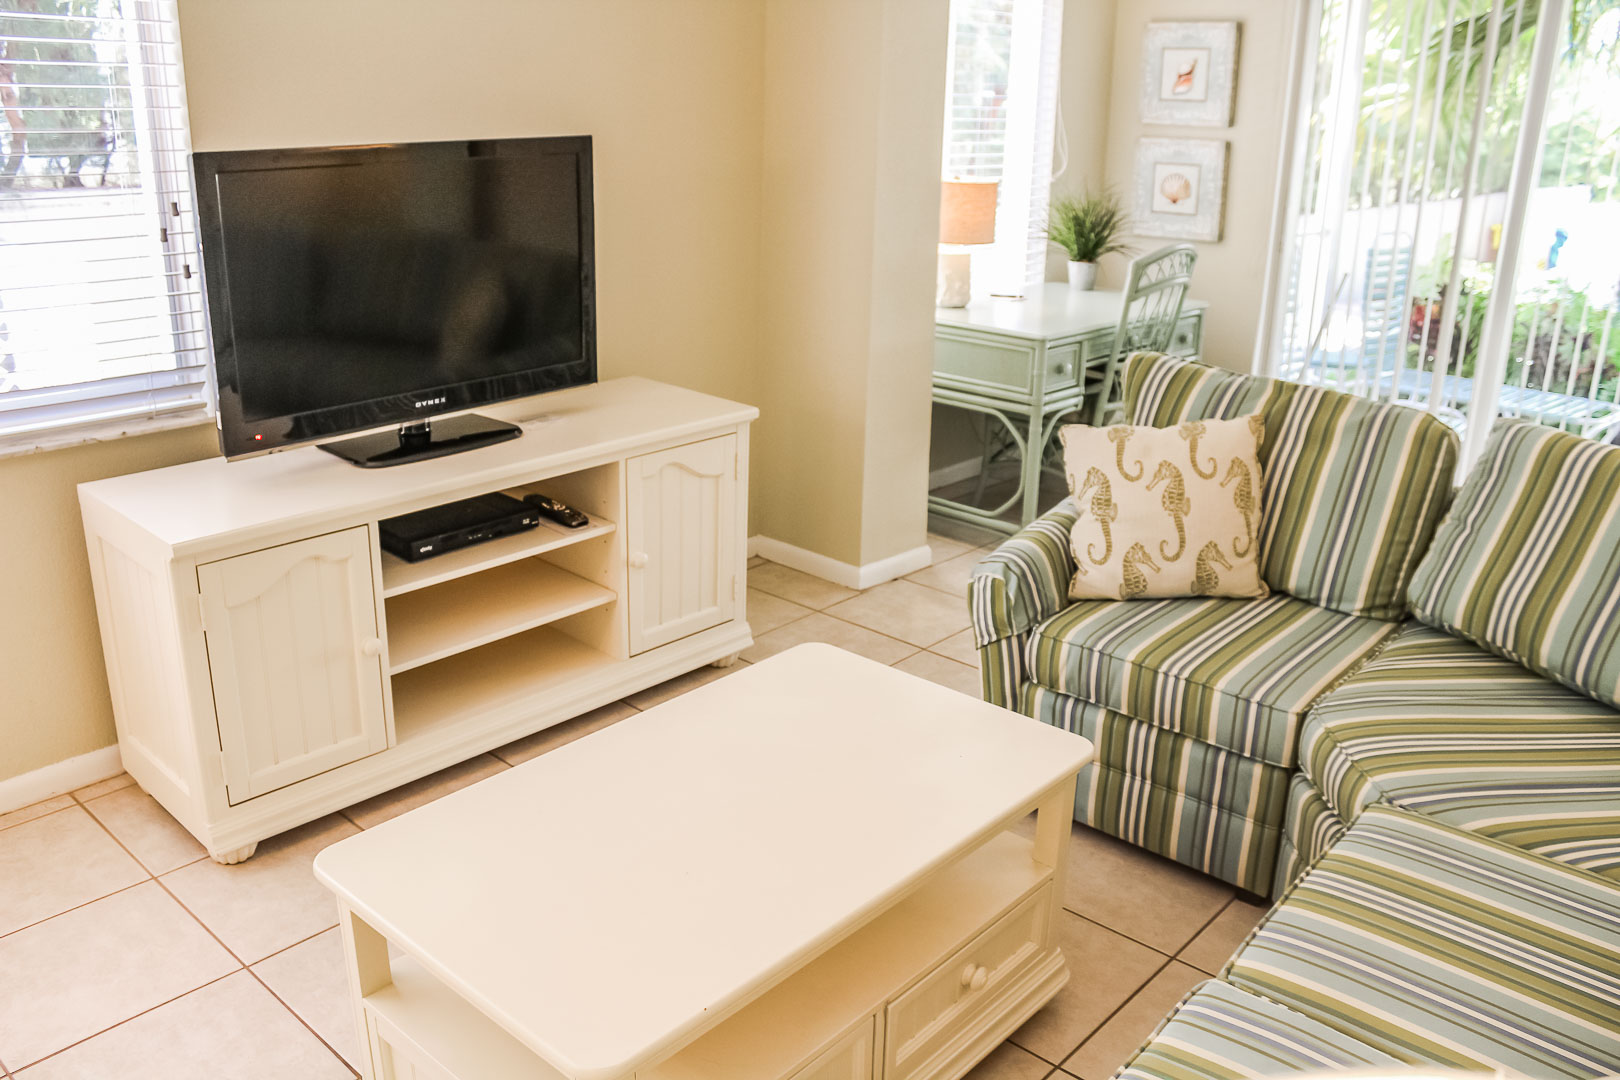 A pleasant living room at VRI's Berkshire by the Sea in Florida.